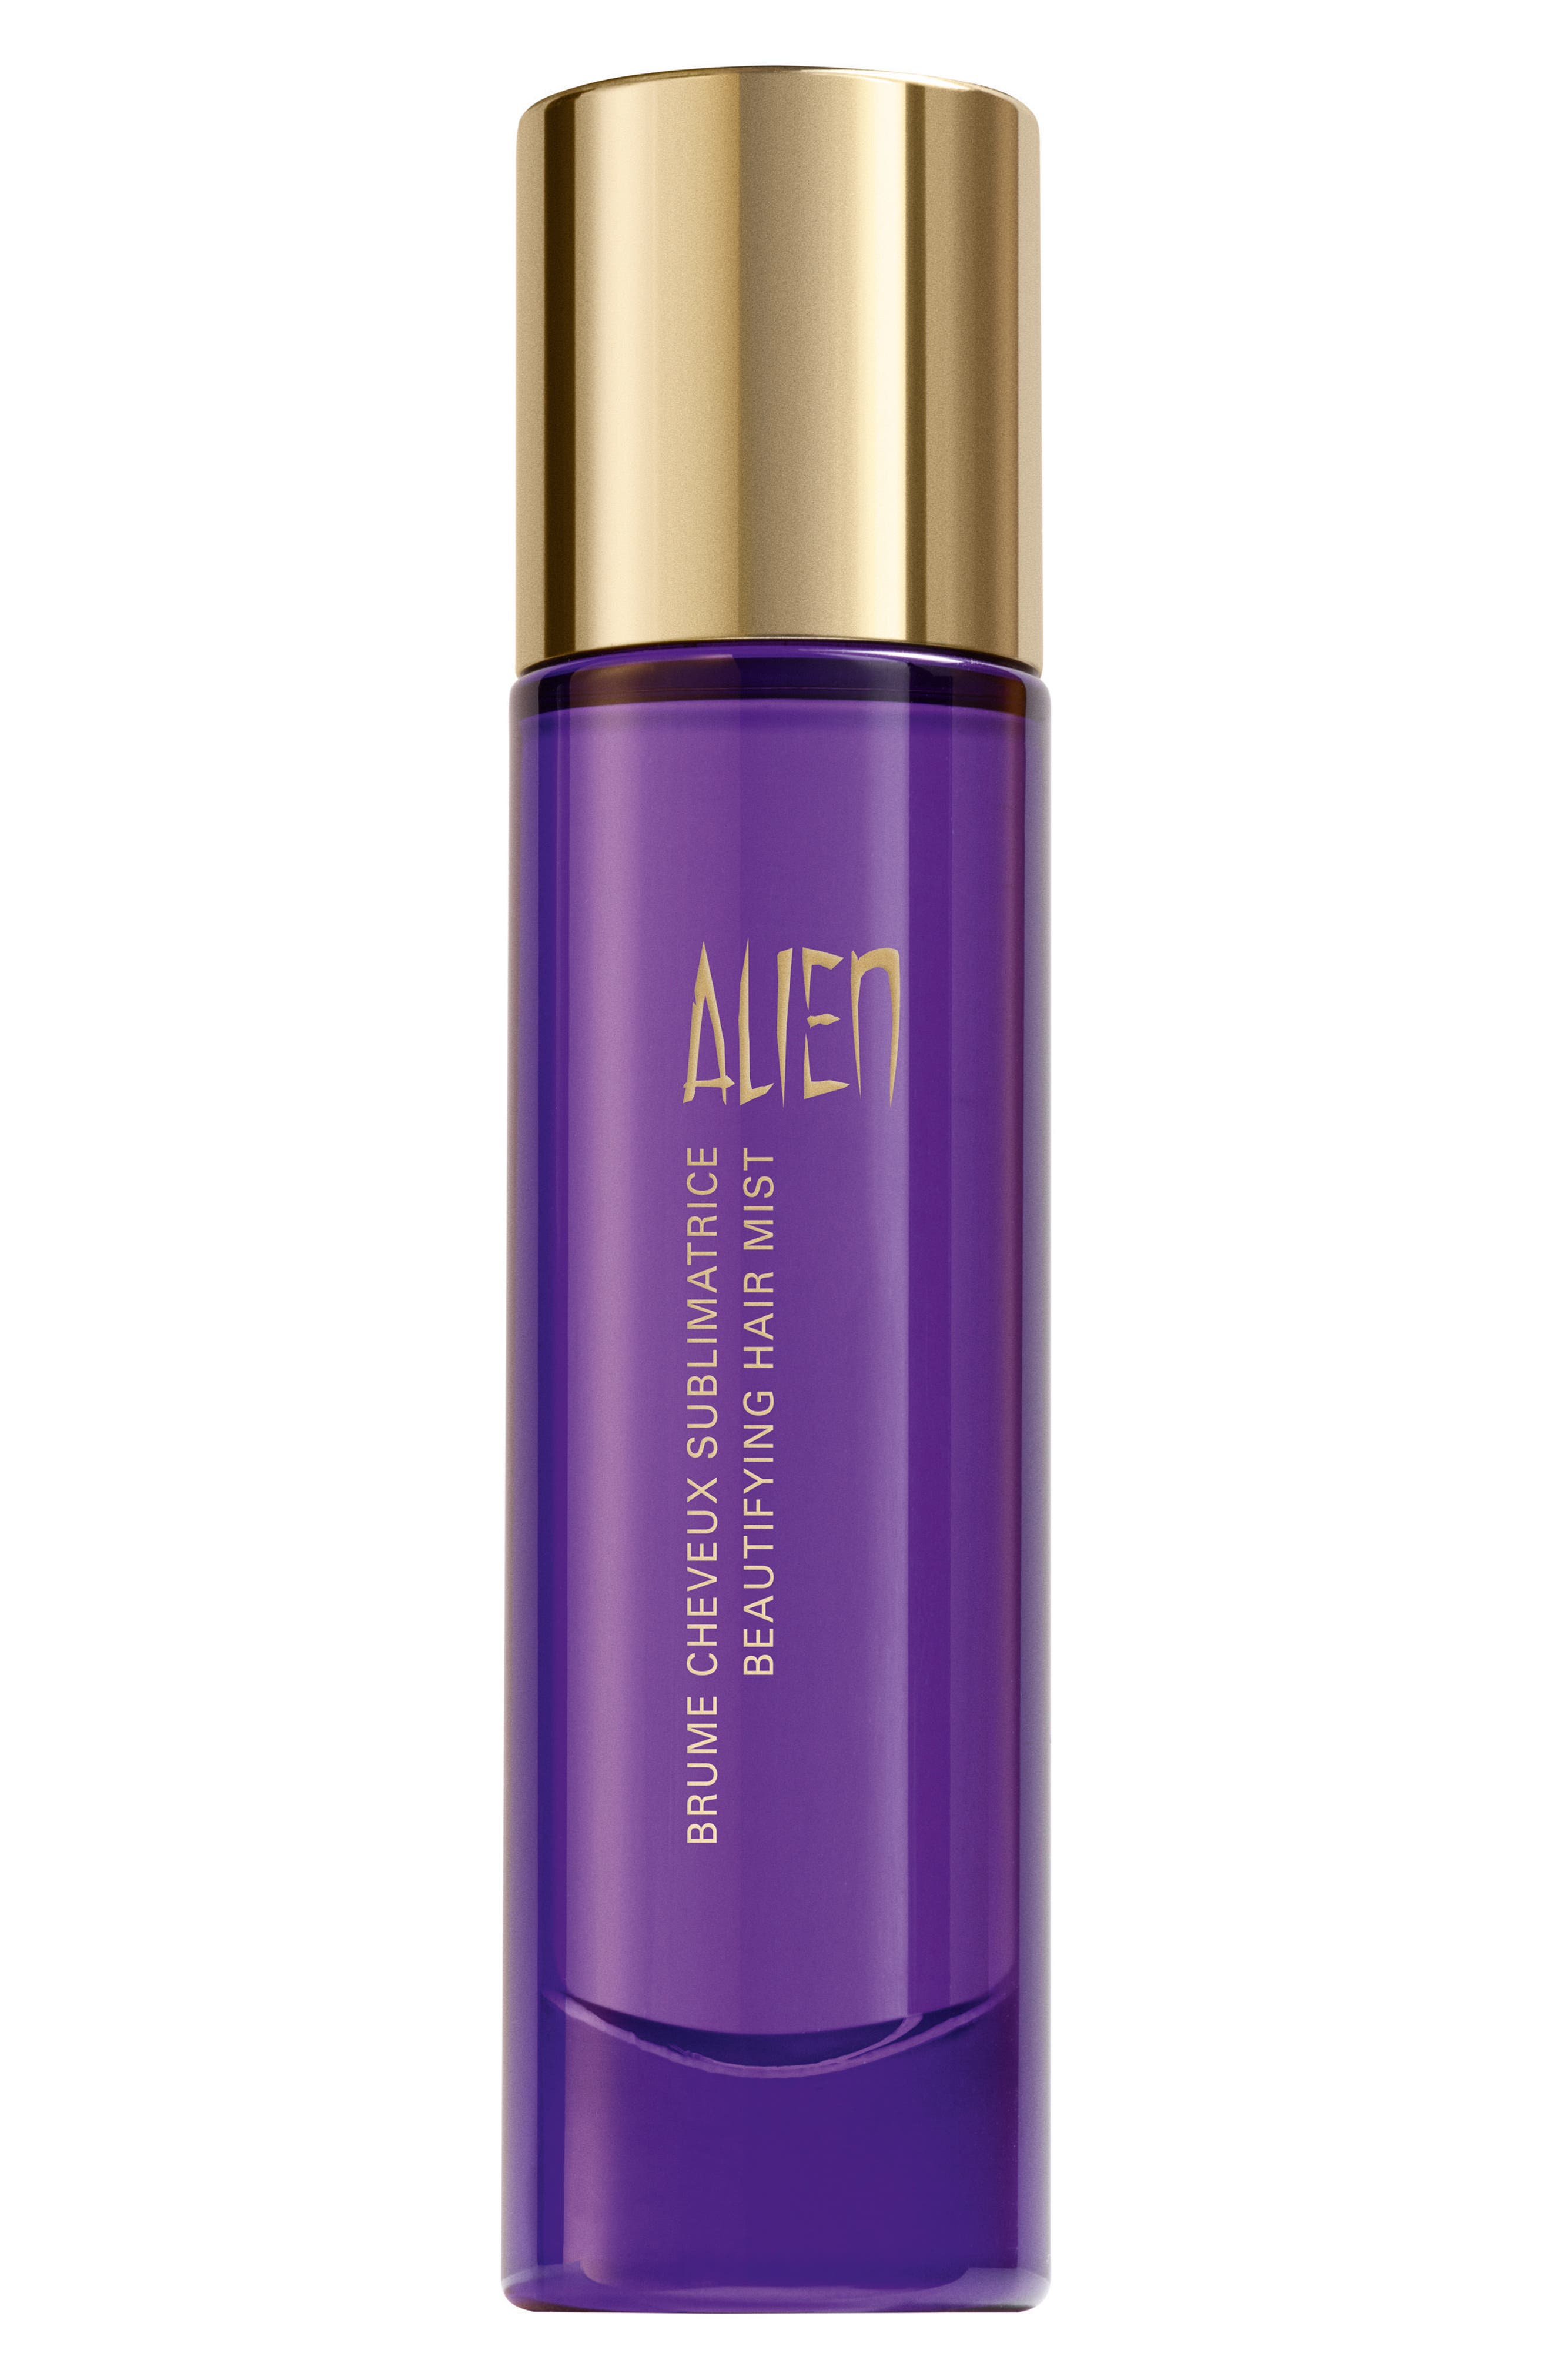 Alien by Mugler Beautifying Hair Mist,                             Main thumbnail 1, color,                             NO COLOR